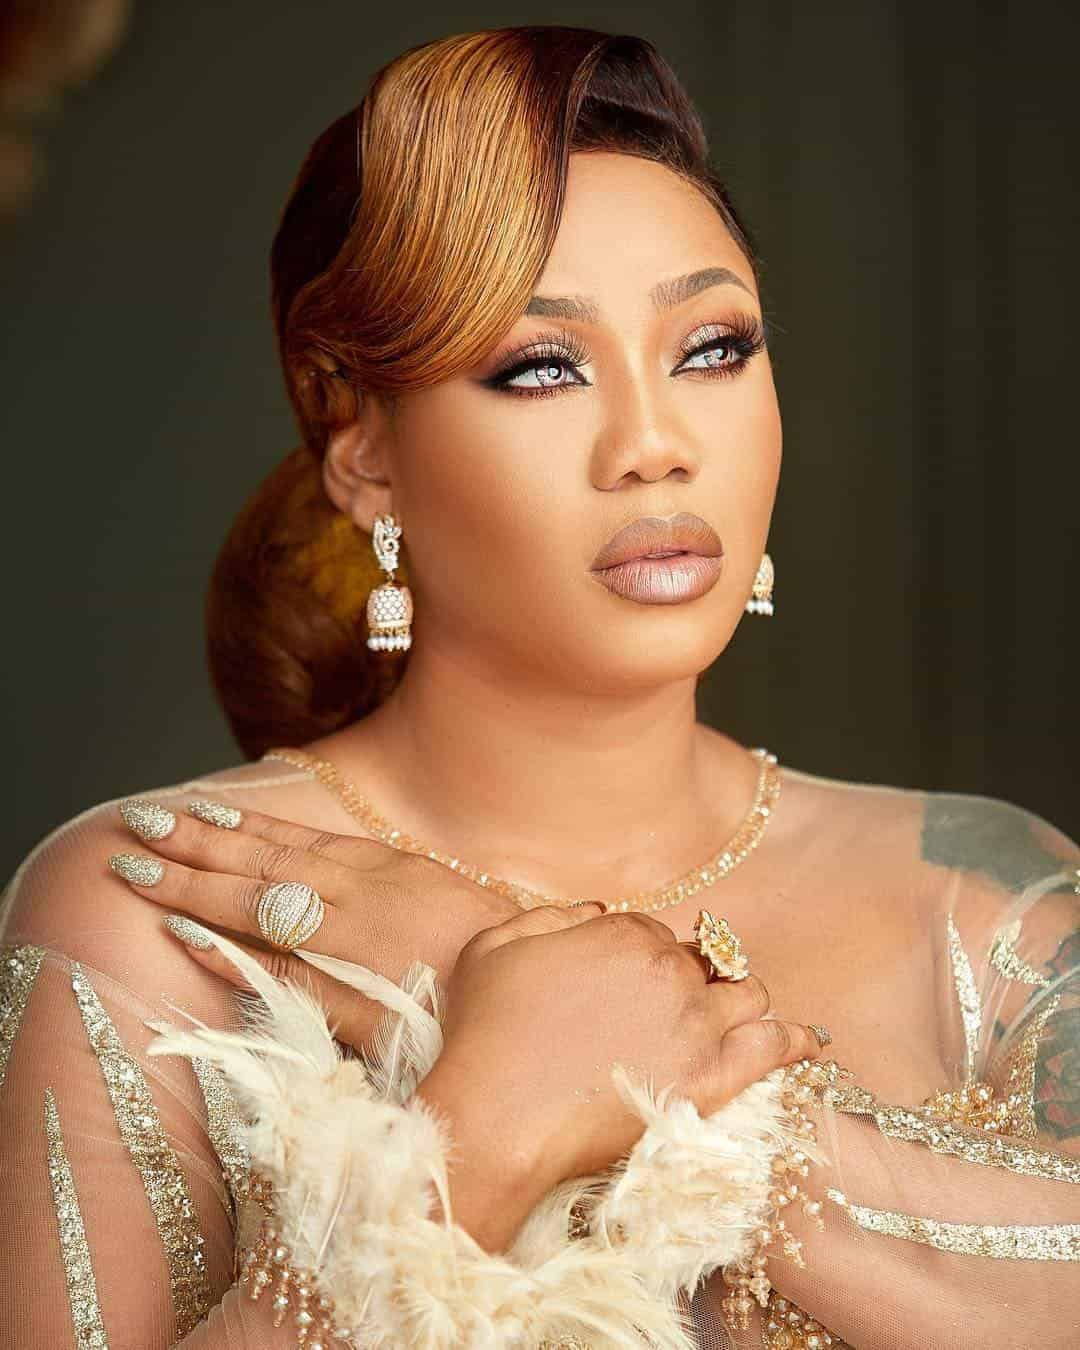 Photo of Toyin Lawani 37th birthday: Princess Shyngle, AY Comedian, & others turn up (Photos)